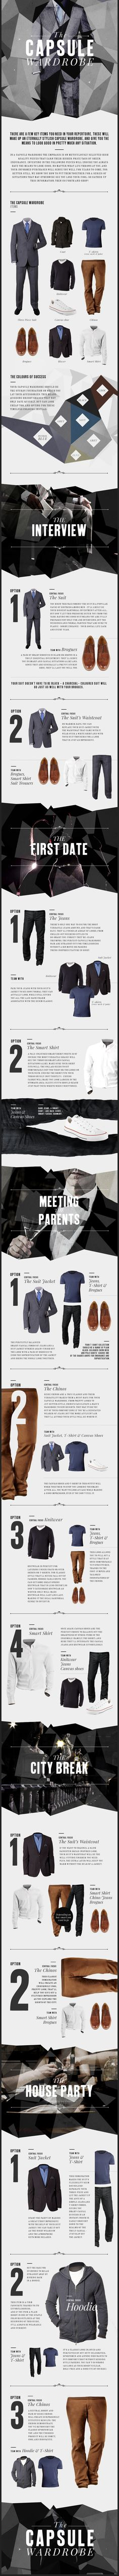 Capsule Wardrobe mens fashion